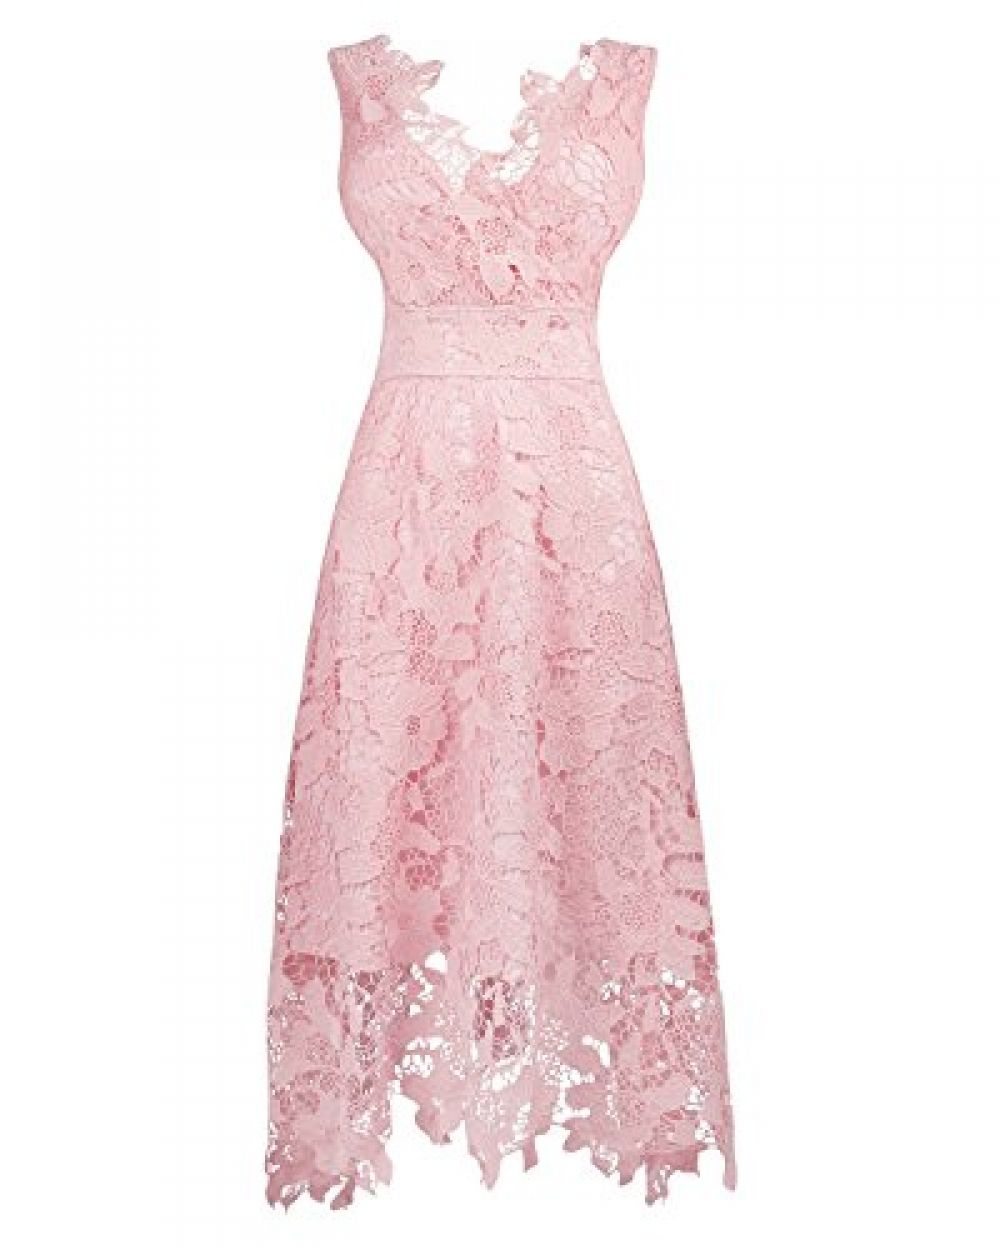 c83250586c1ab KIMILILY Women's Pink V Neck Elegant Floral Lace Prom Cocktail Dress ...